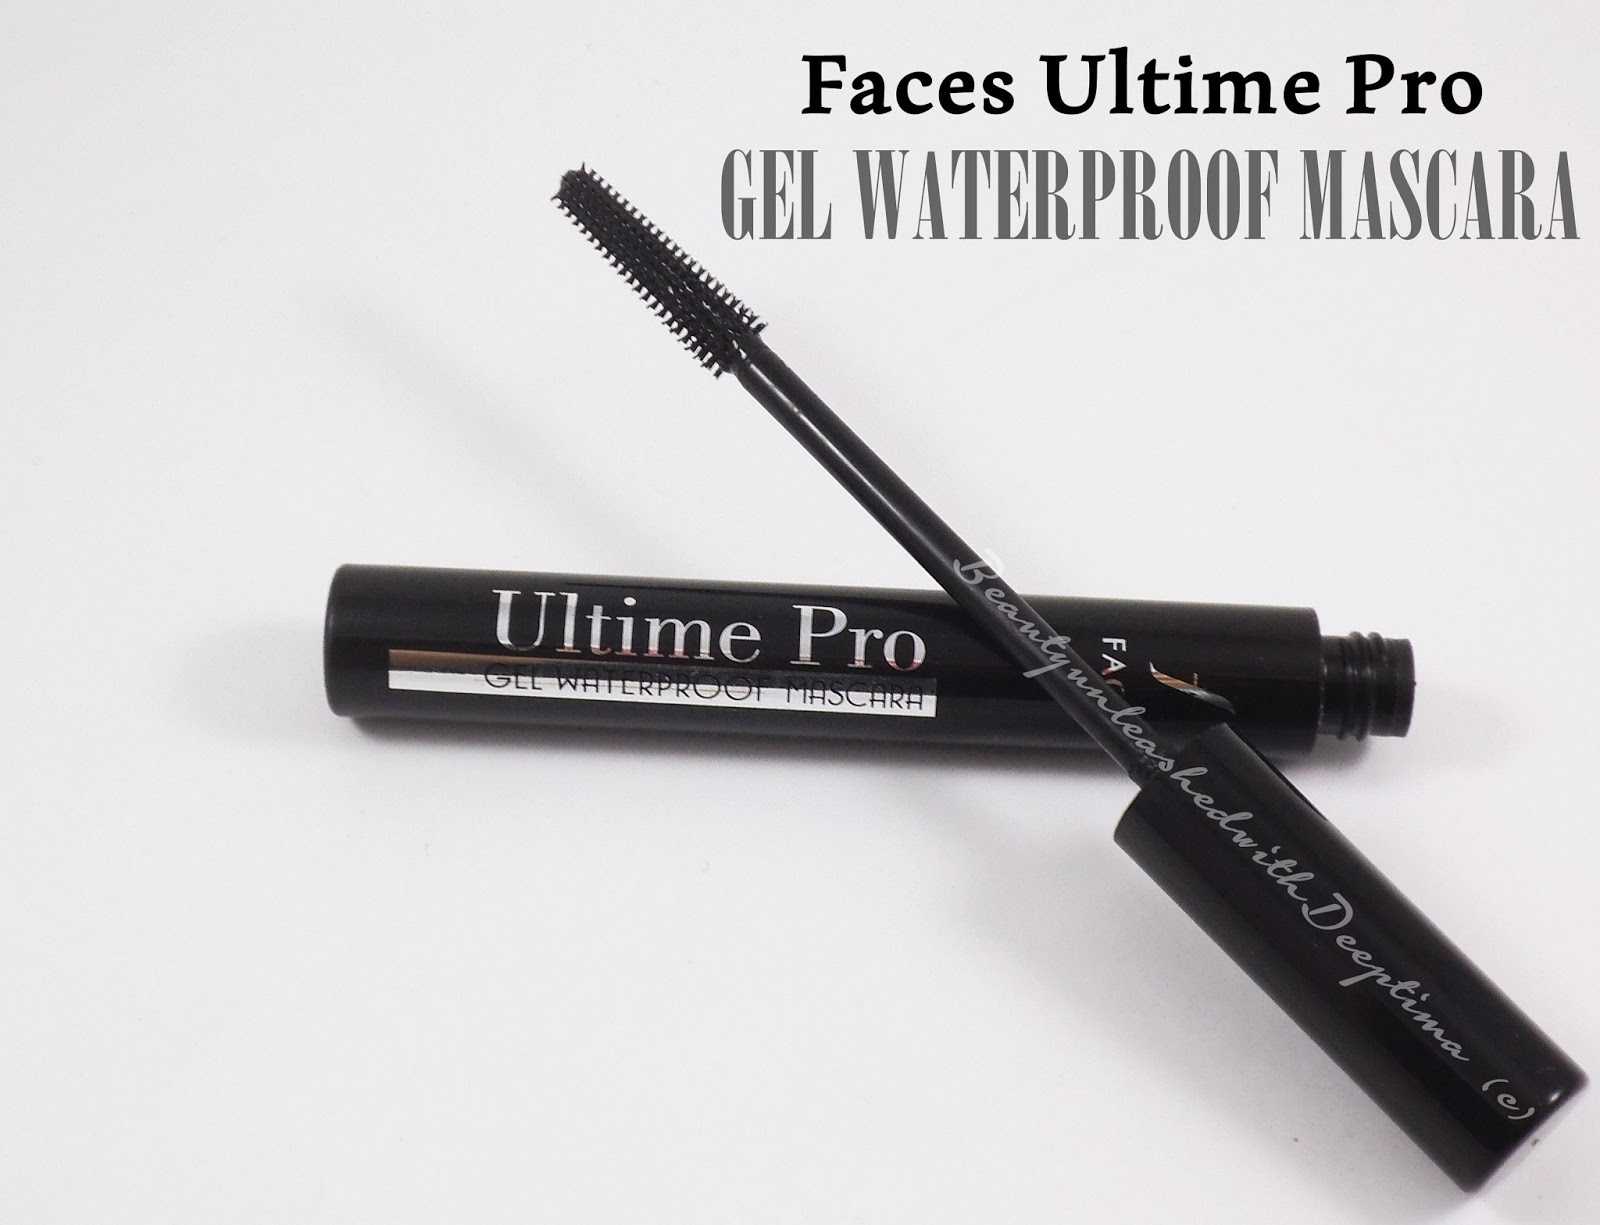 25ee68c2c3d Simply Deeptima | Beauty and Lifestyle Blog: Faces Ultime Pro GEL ...